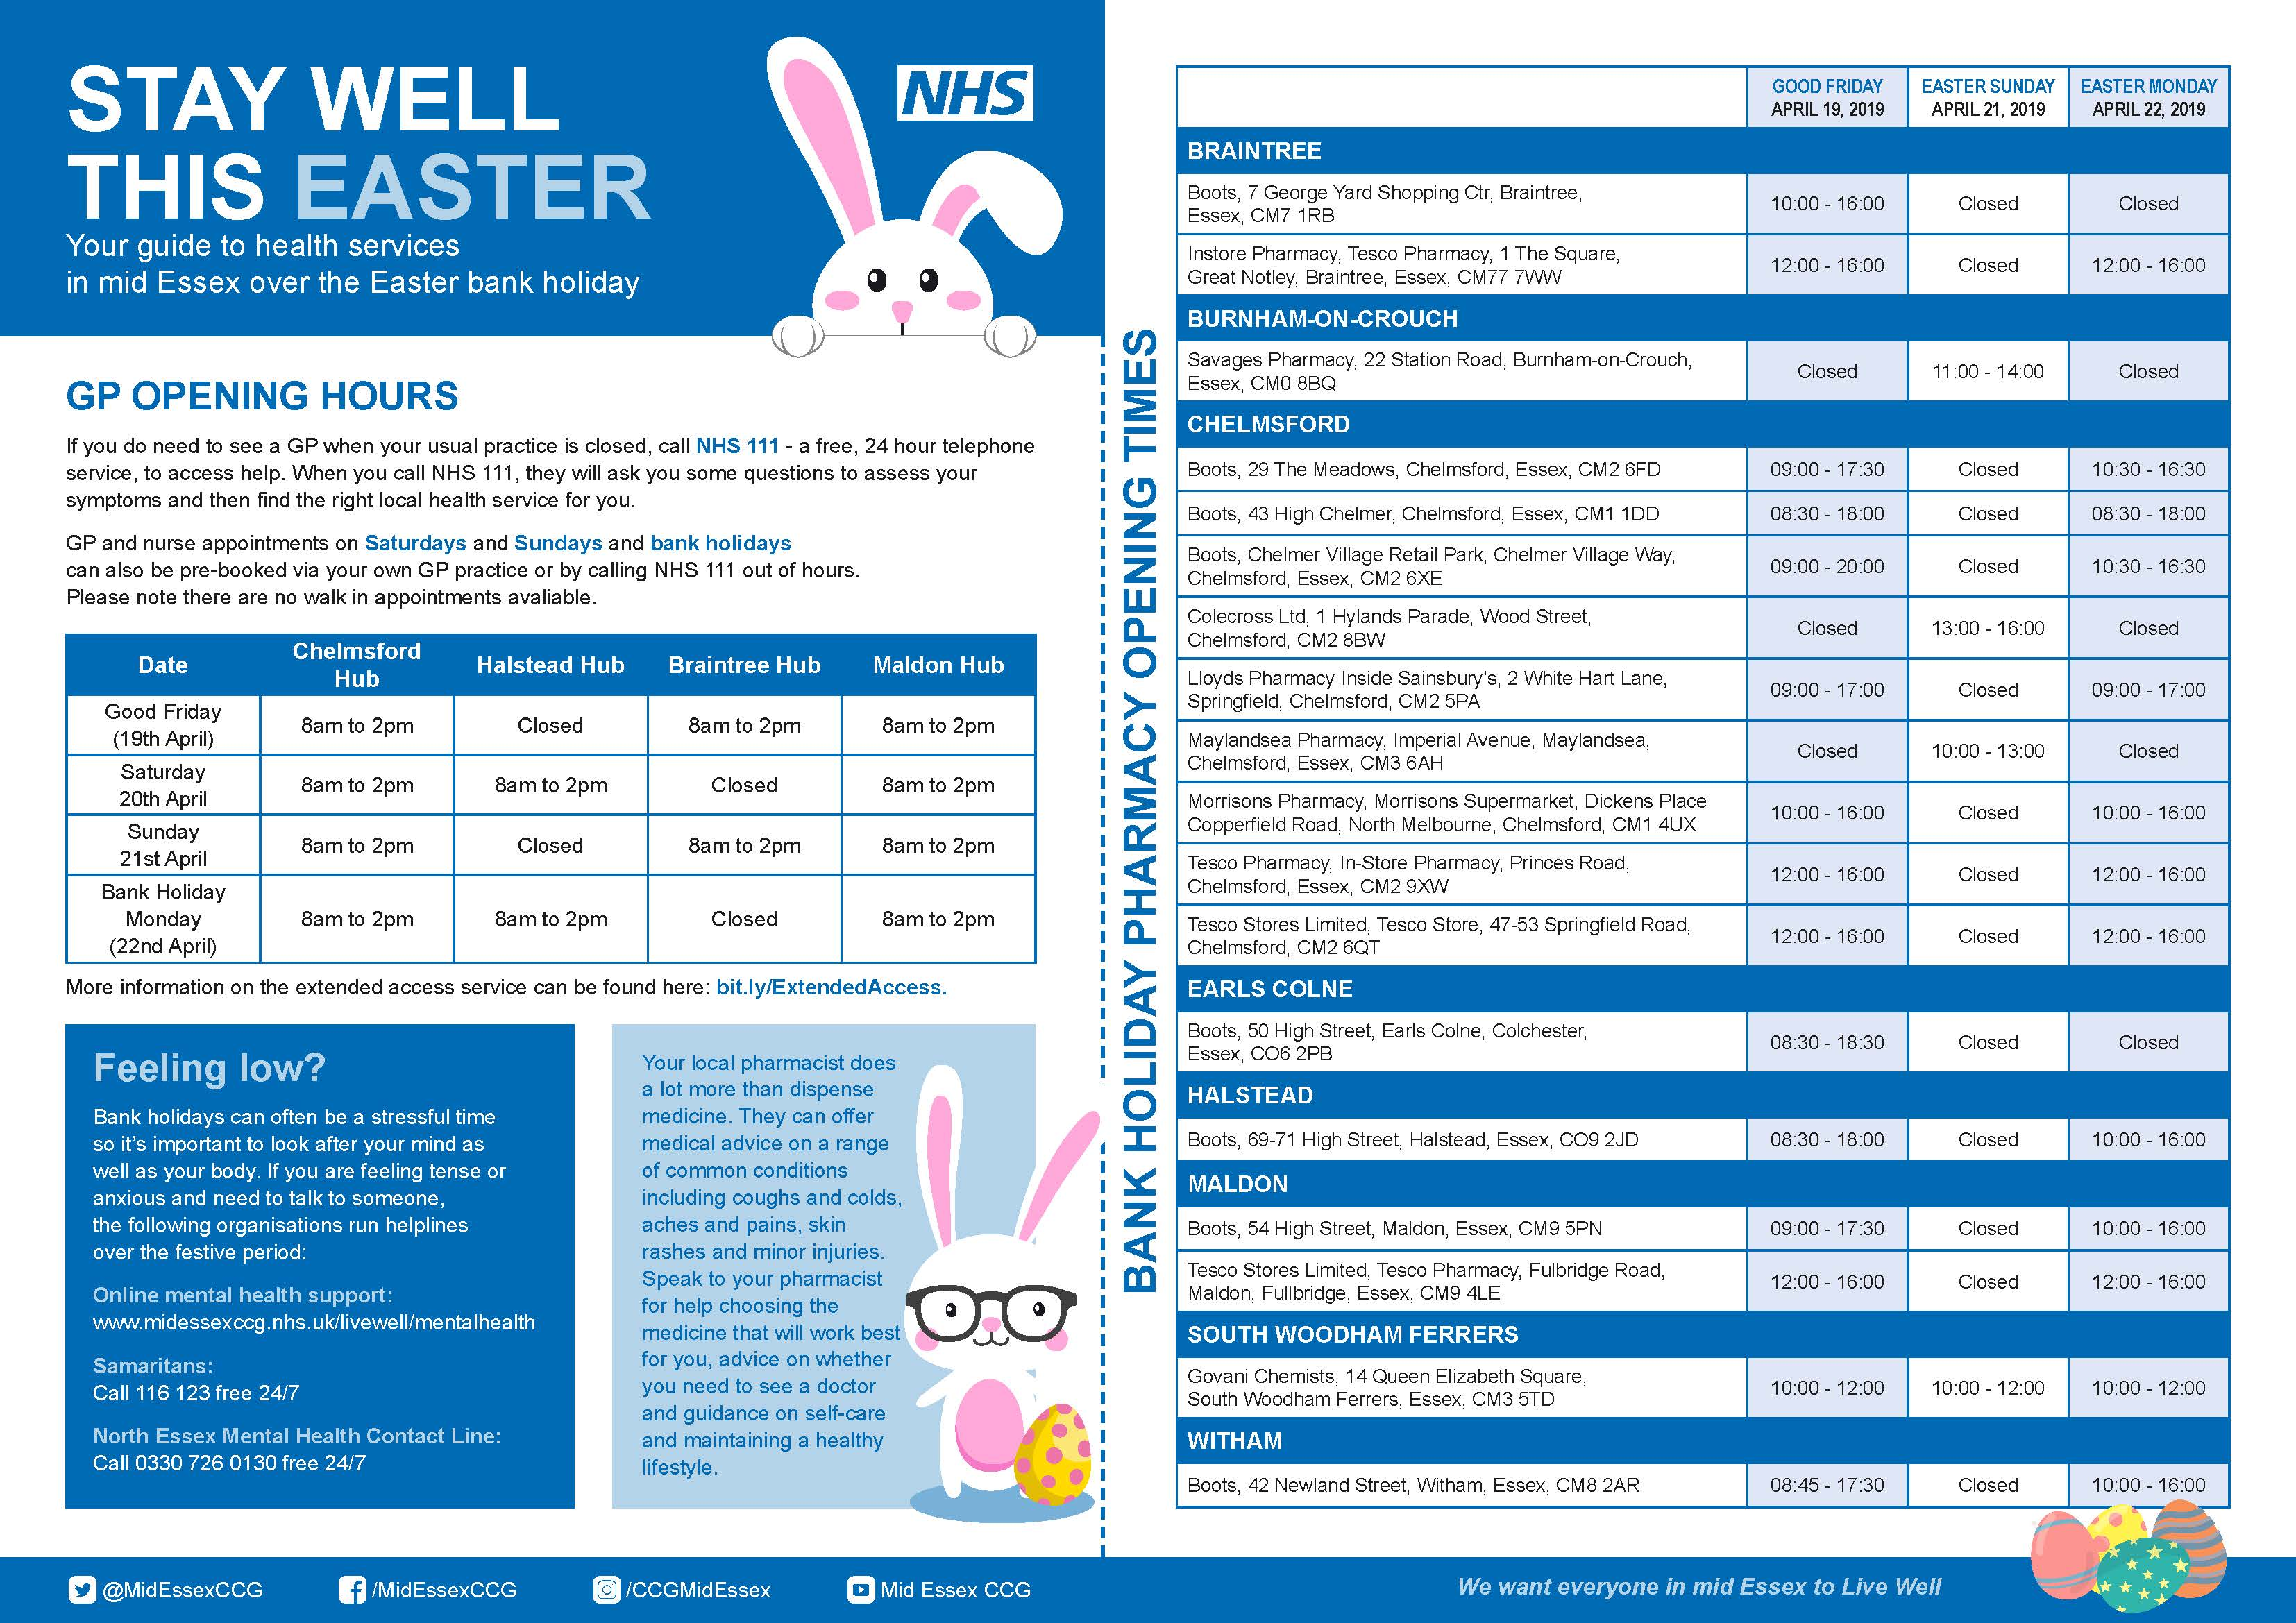 Your NHS services over Easter weekend 2019